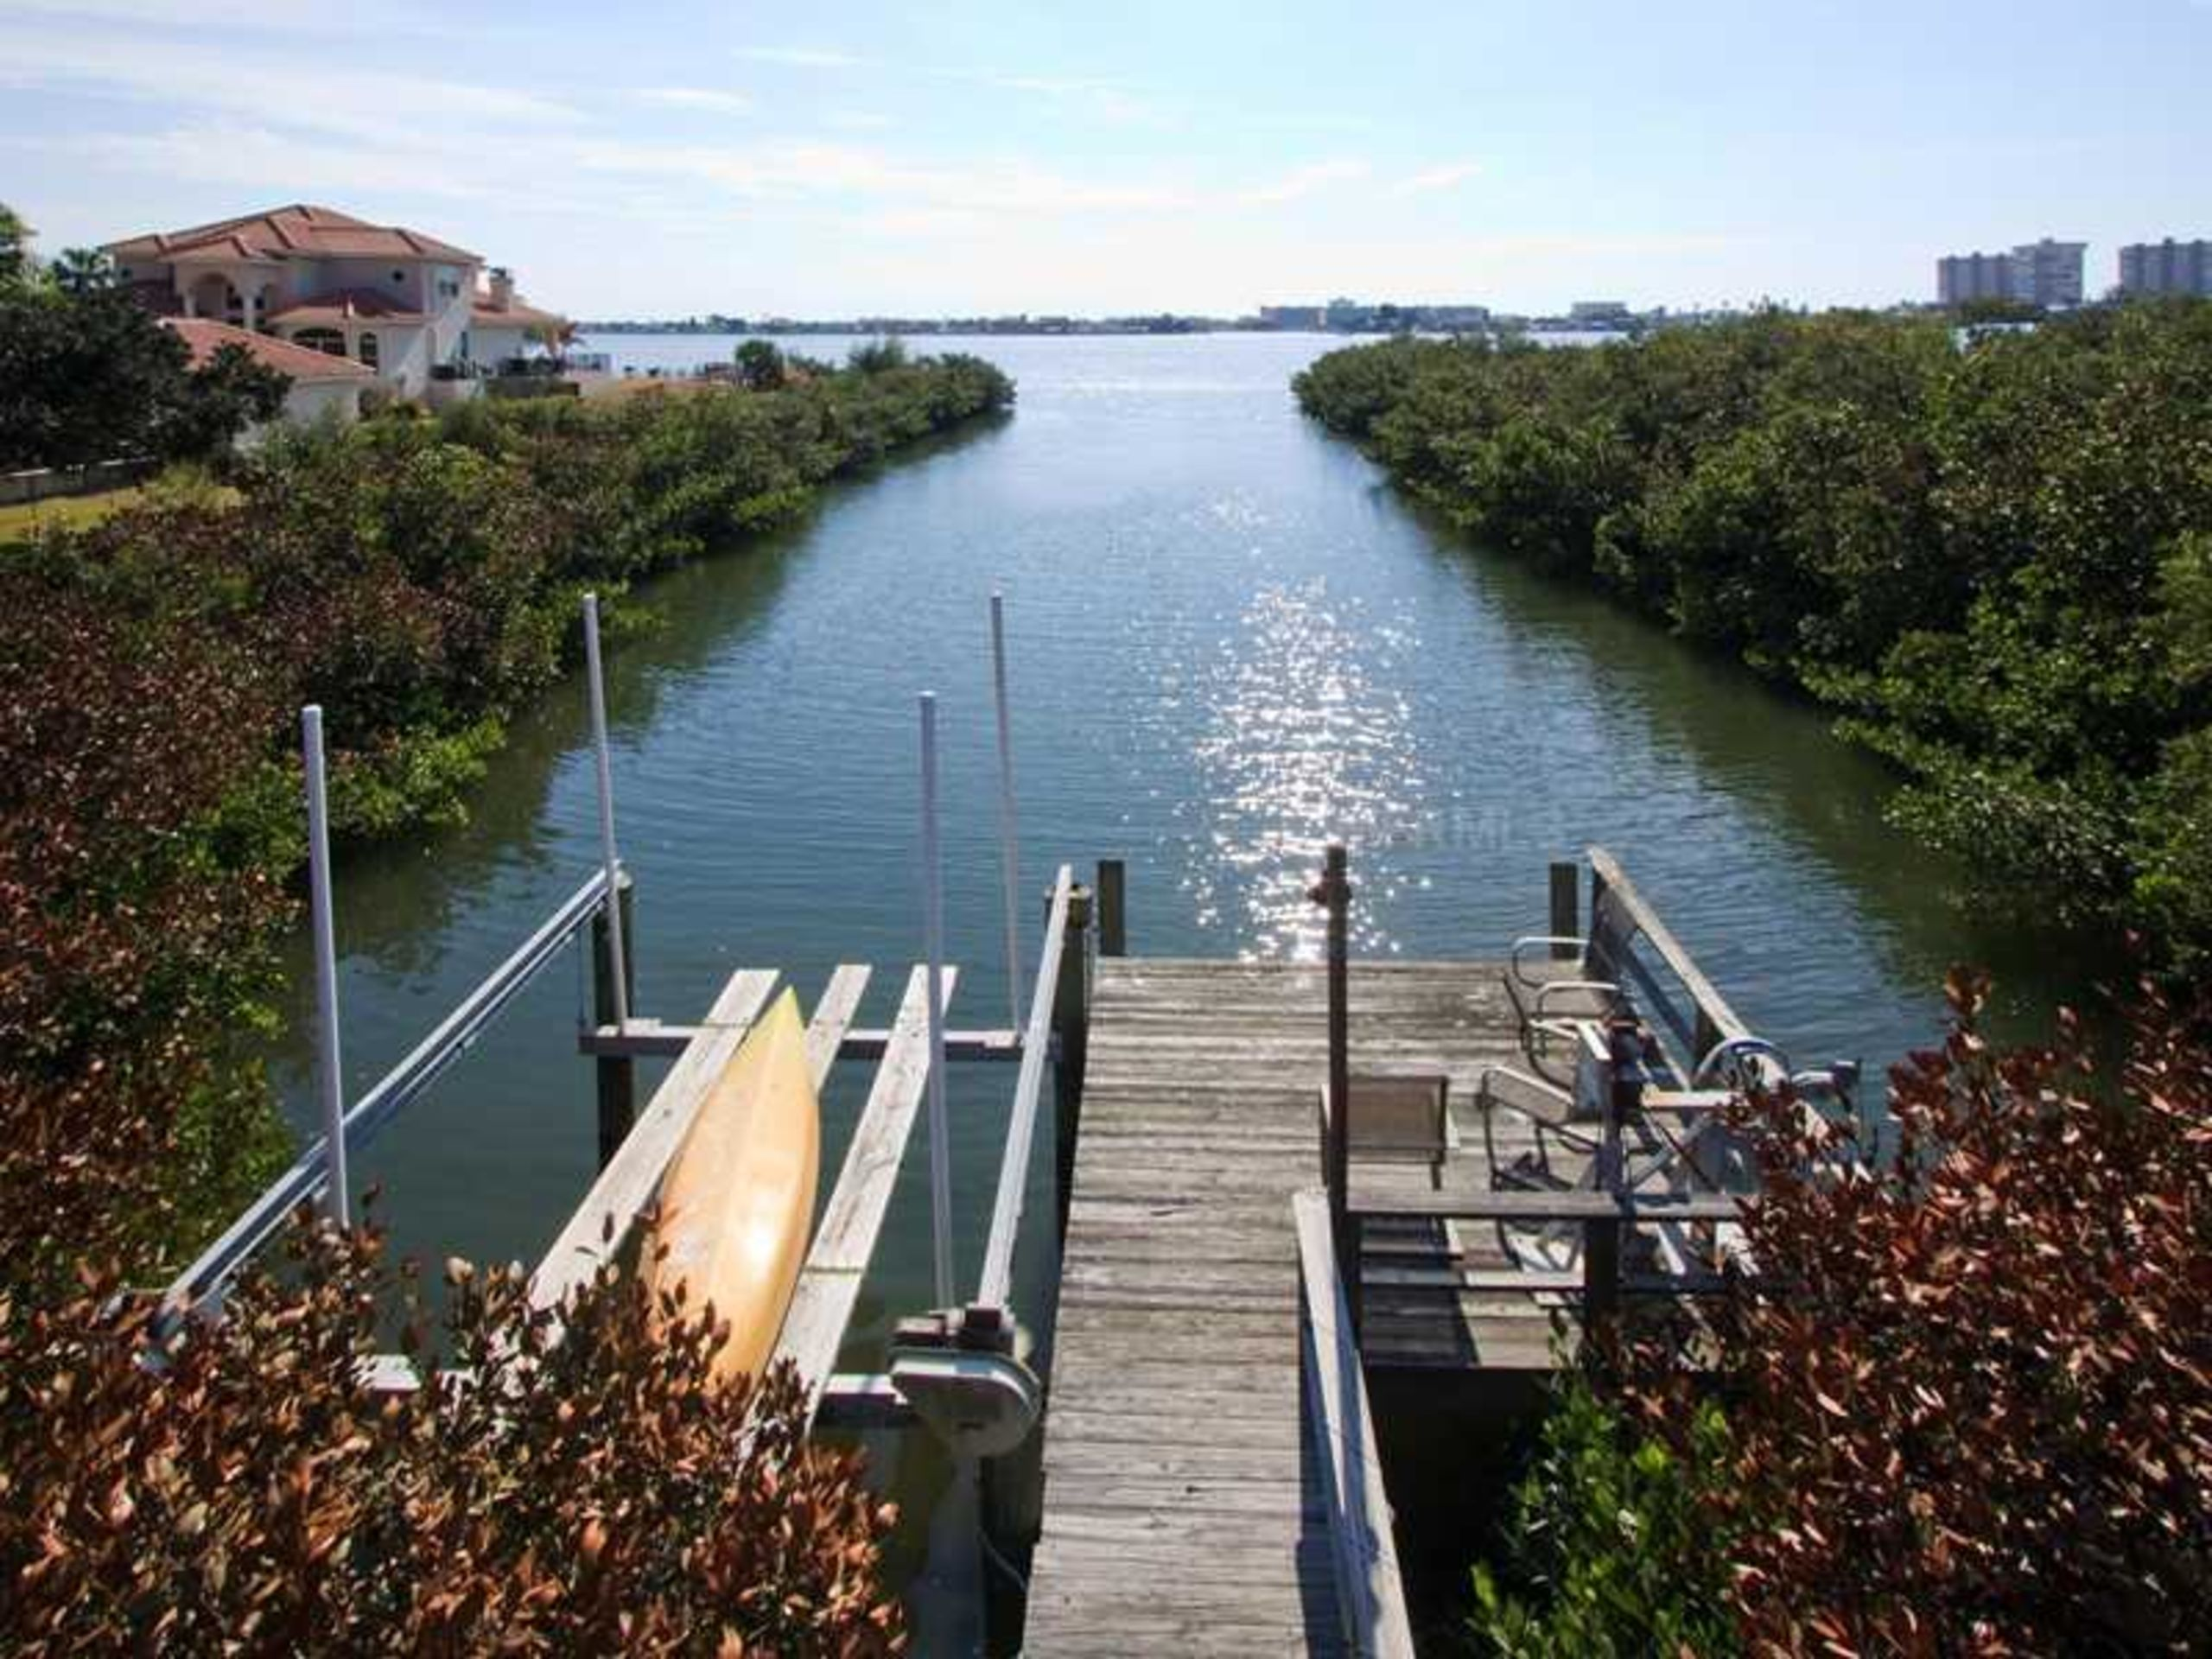 Waterfront Home in Old Oakhurst, overlooking Boca Ciega Bay, Seminole, FL